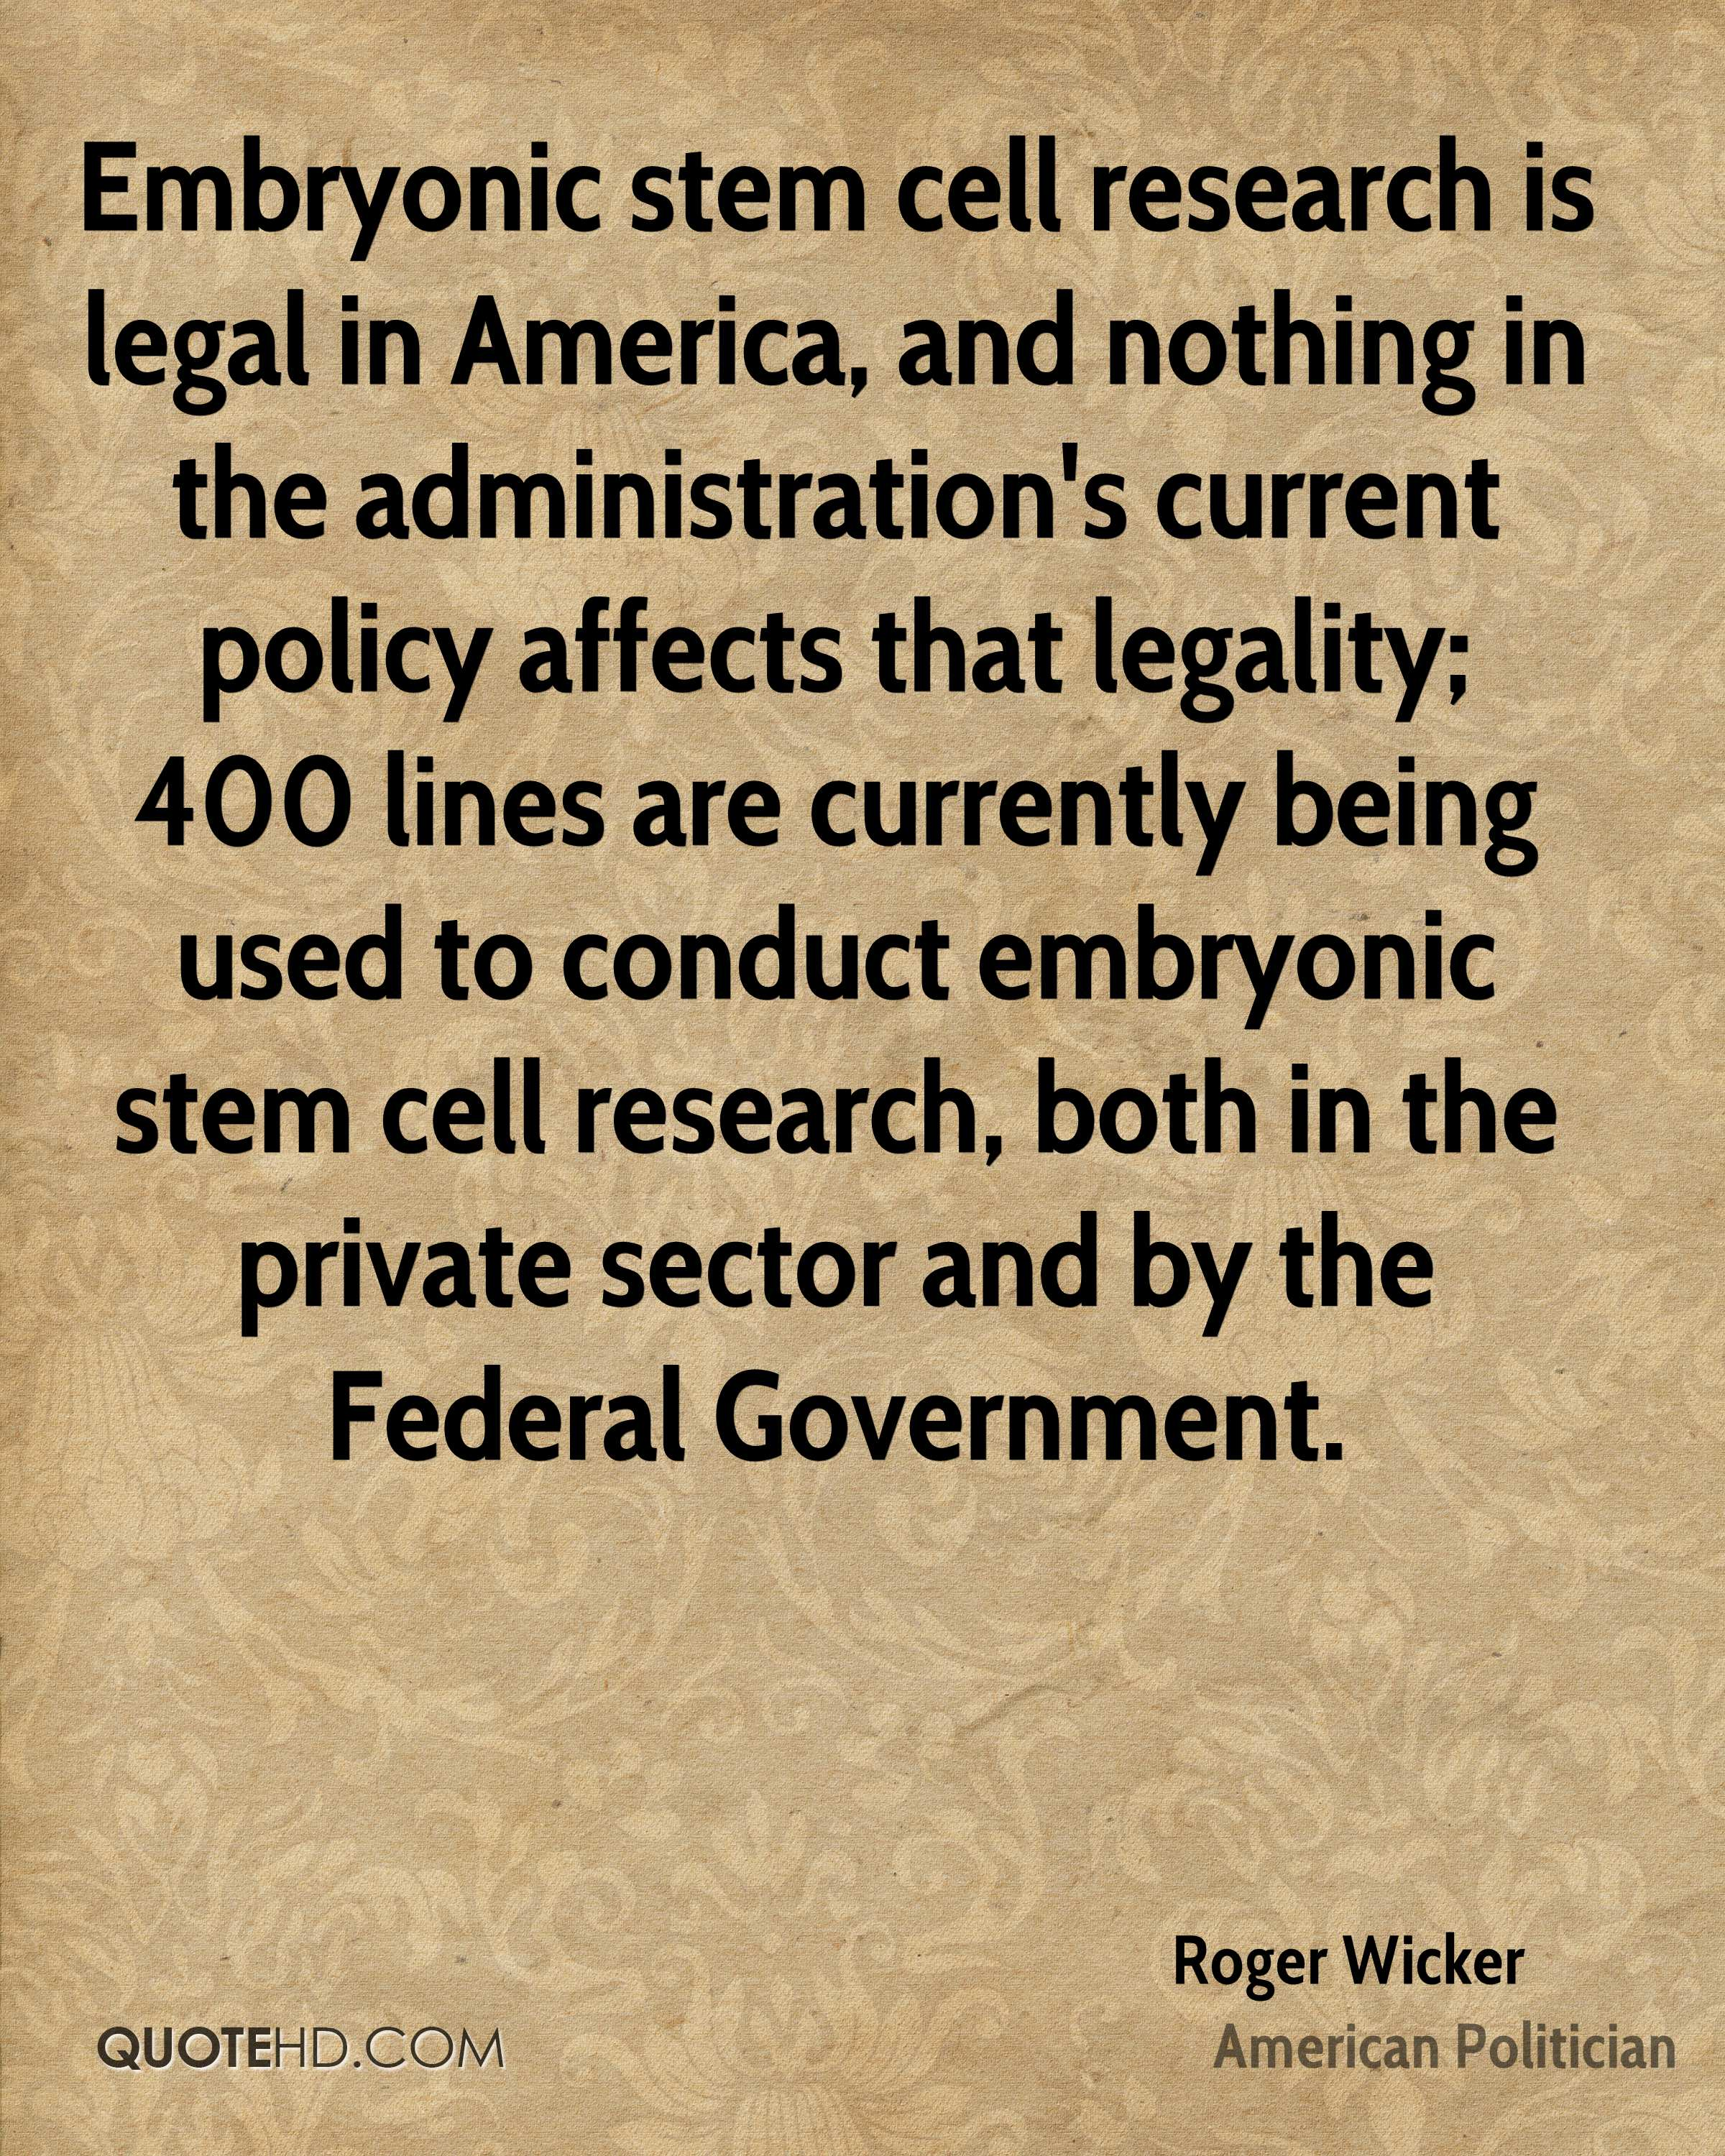 Embryonic stem cell research is legal in America, and nothing in the administration's current policy affects that legality; 400 lines are currently being used to conduct embryonic stem cell research, both in the private sector and by the Federal Government.